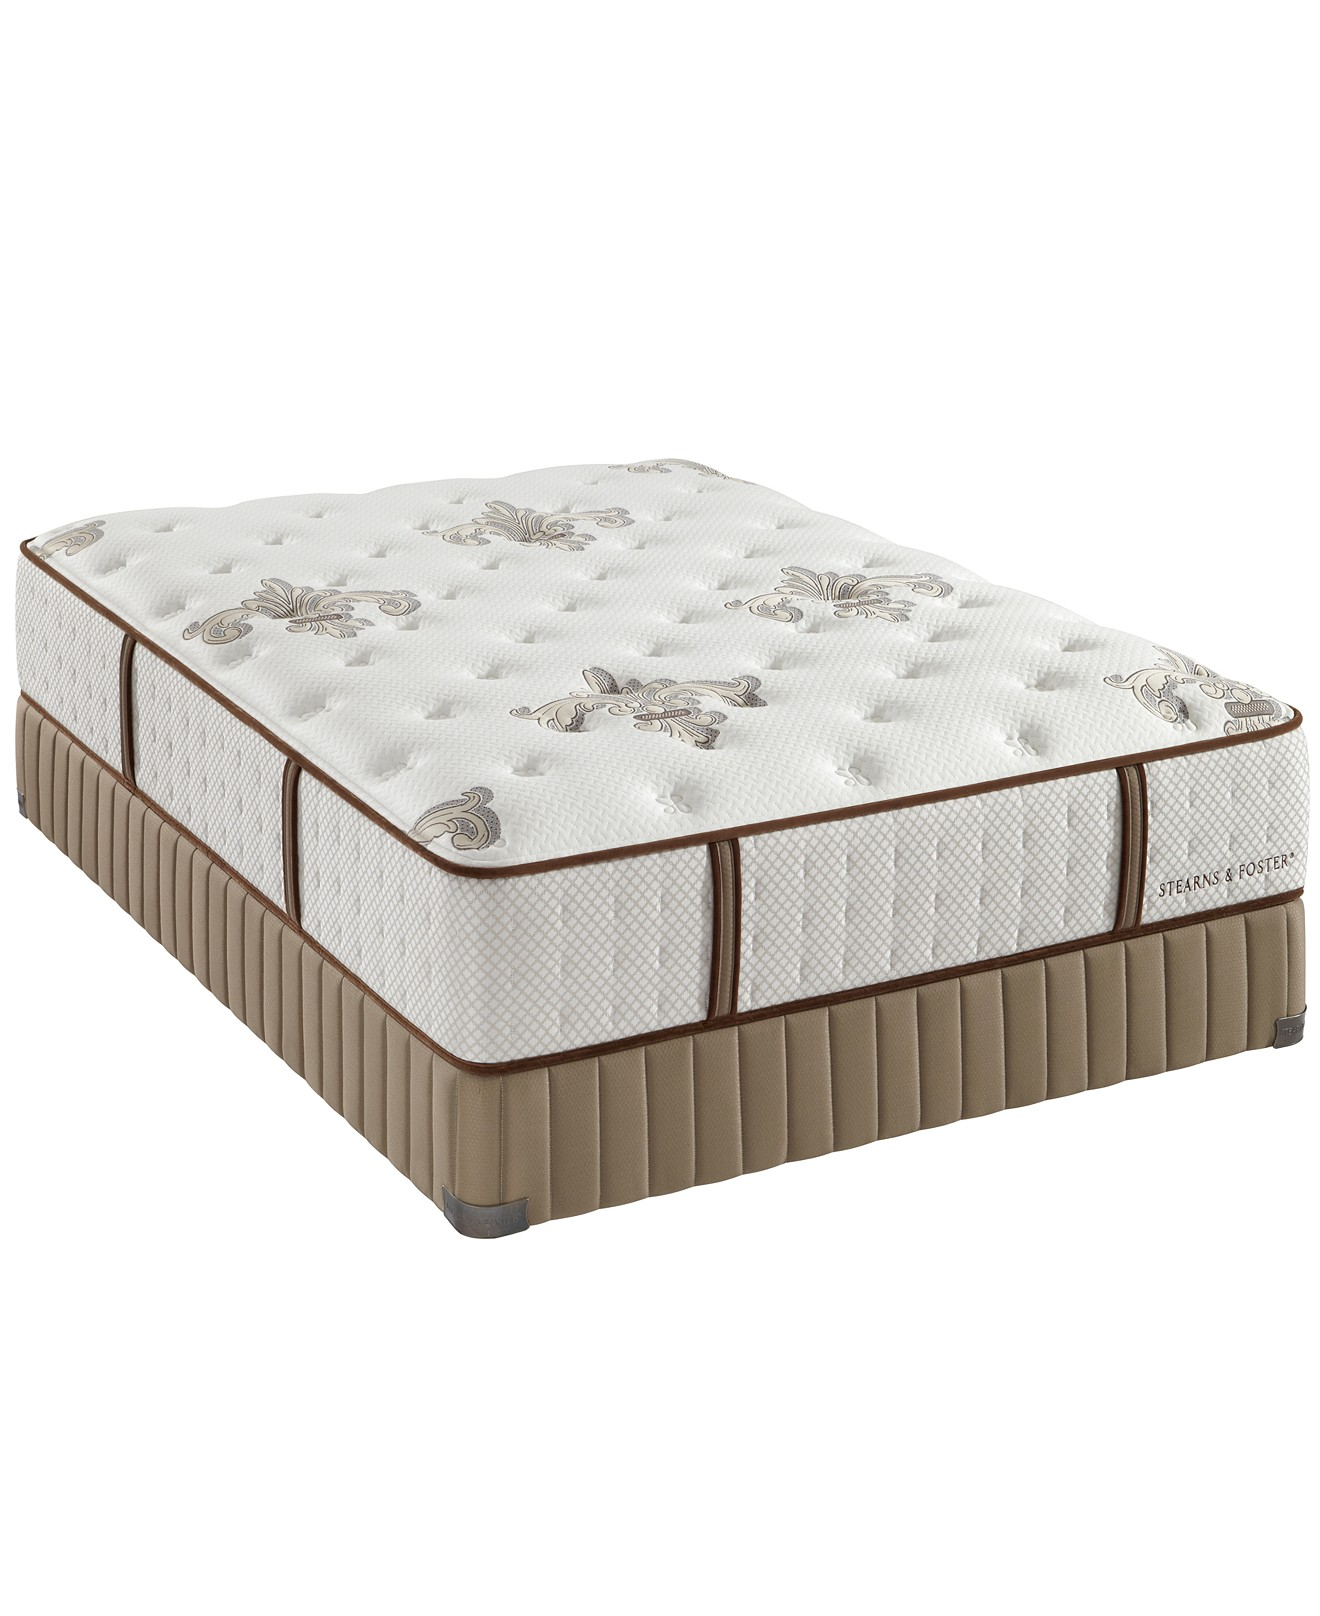 Luxury Home 2-Piece Stearns & Foster Estate  Mattress  with Boxspring, Plush Tight Top,Queen at Sears.com